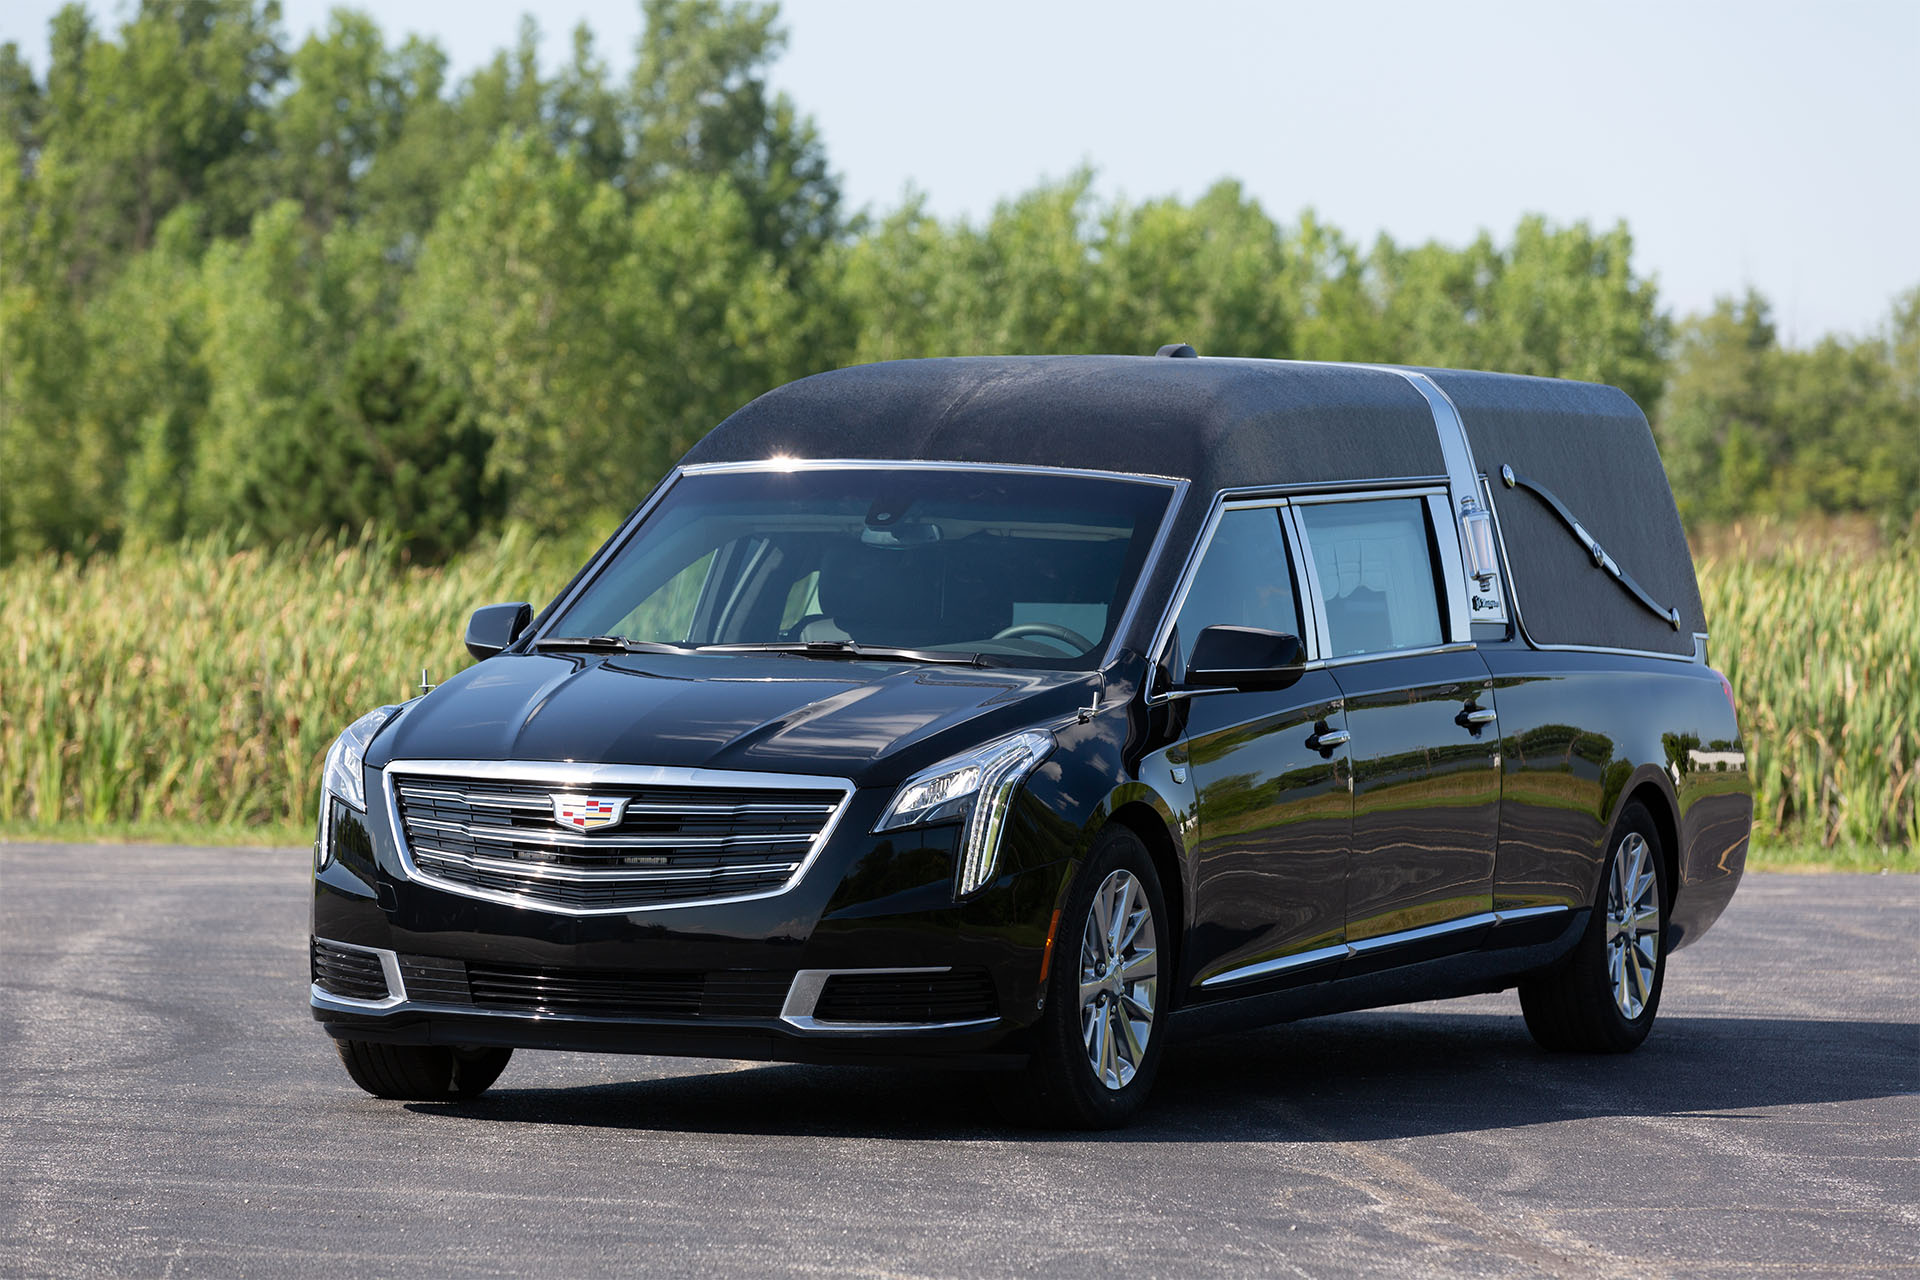 Photo Gallery Cadillac Xts Masterpiece S Amp S Coaches